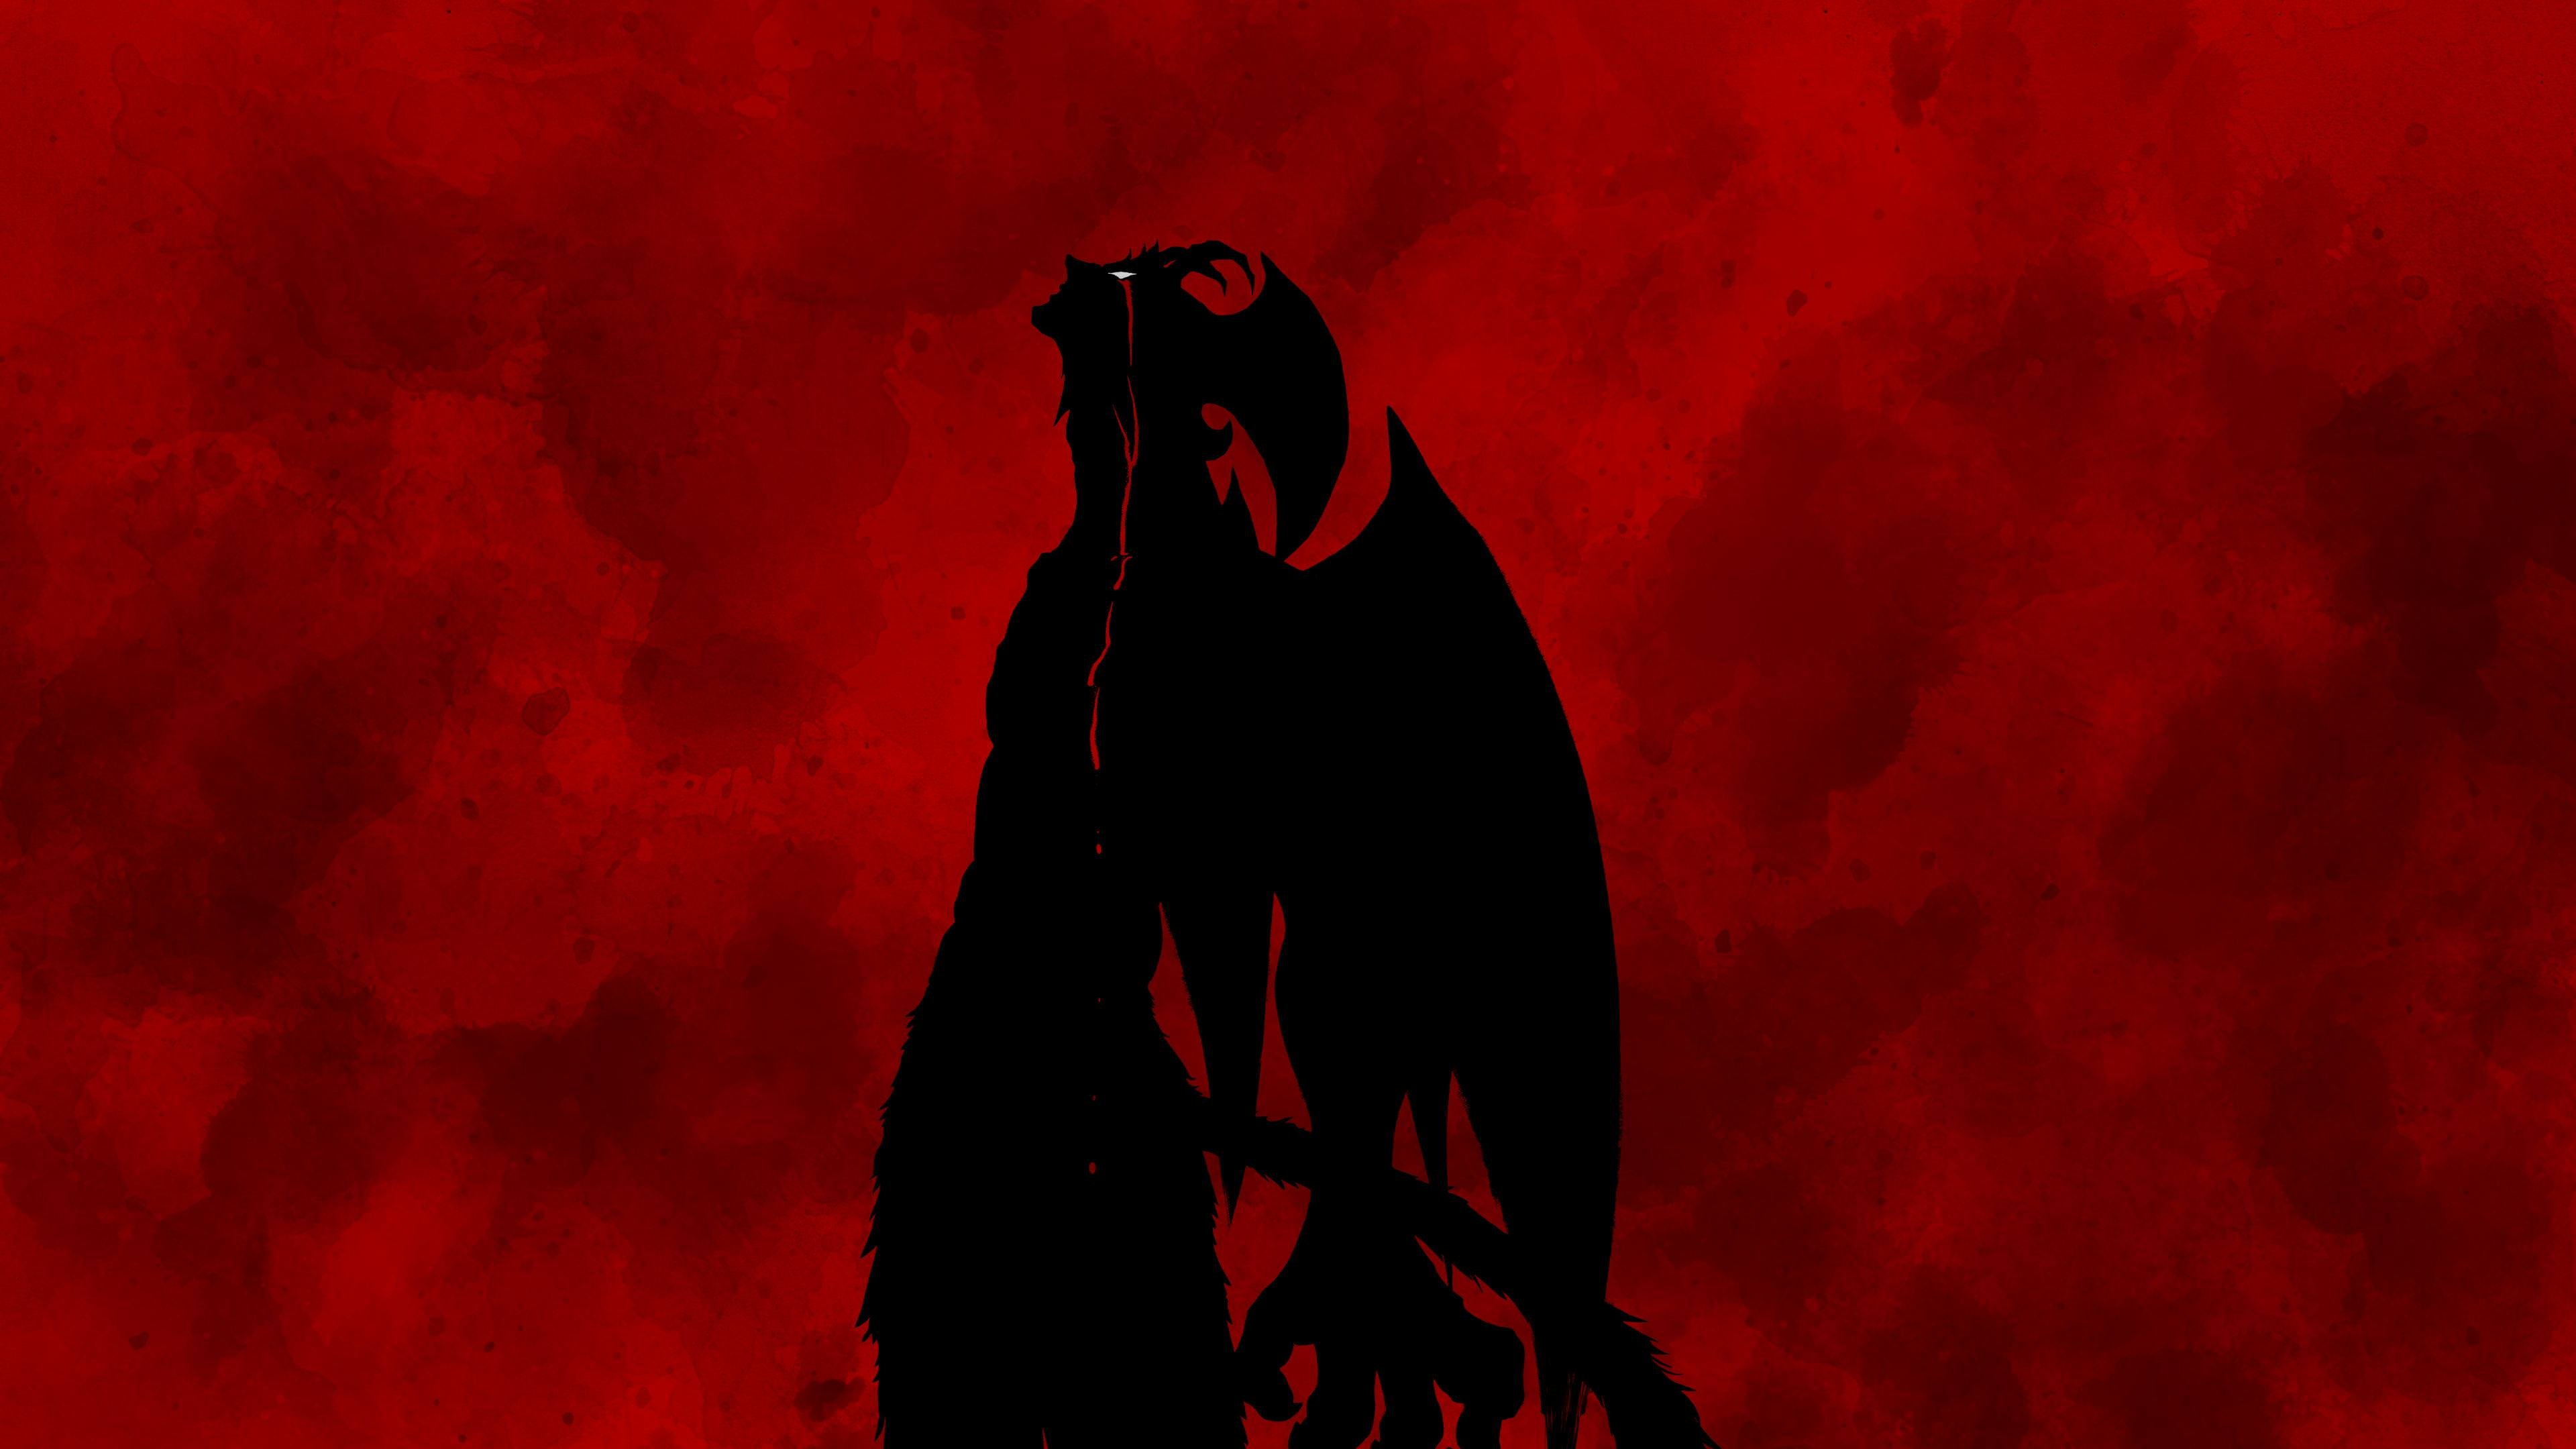 Devilman Crybaby Wallpaper Posted By Sarah Walker